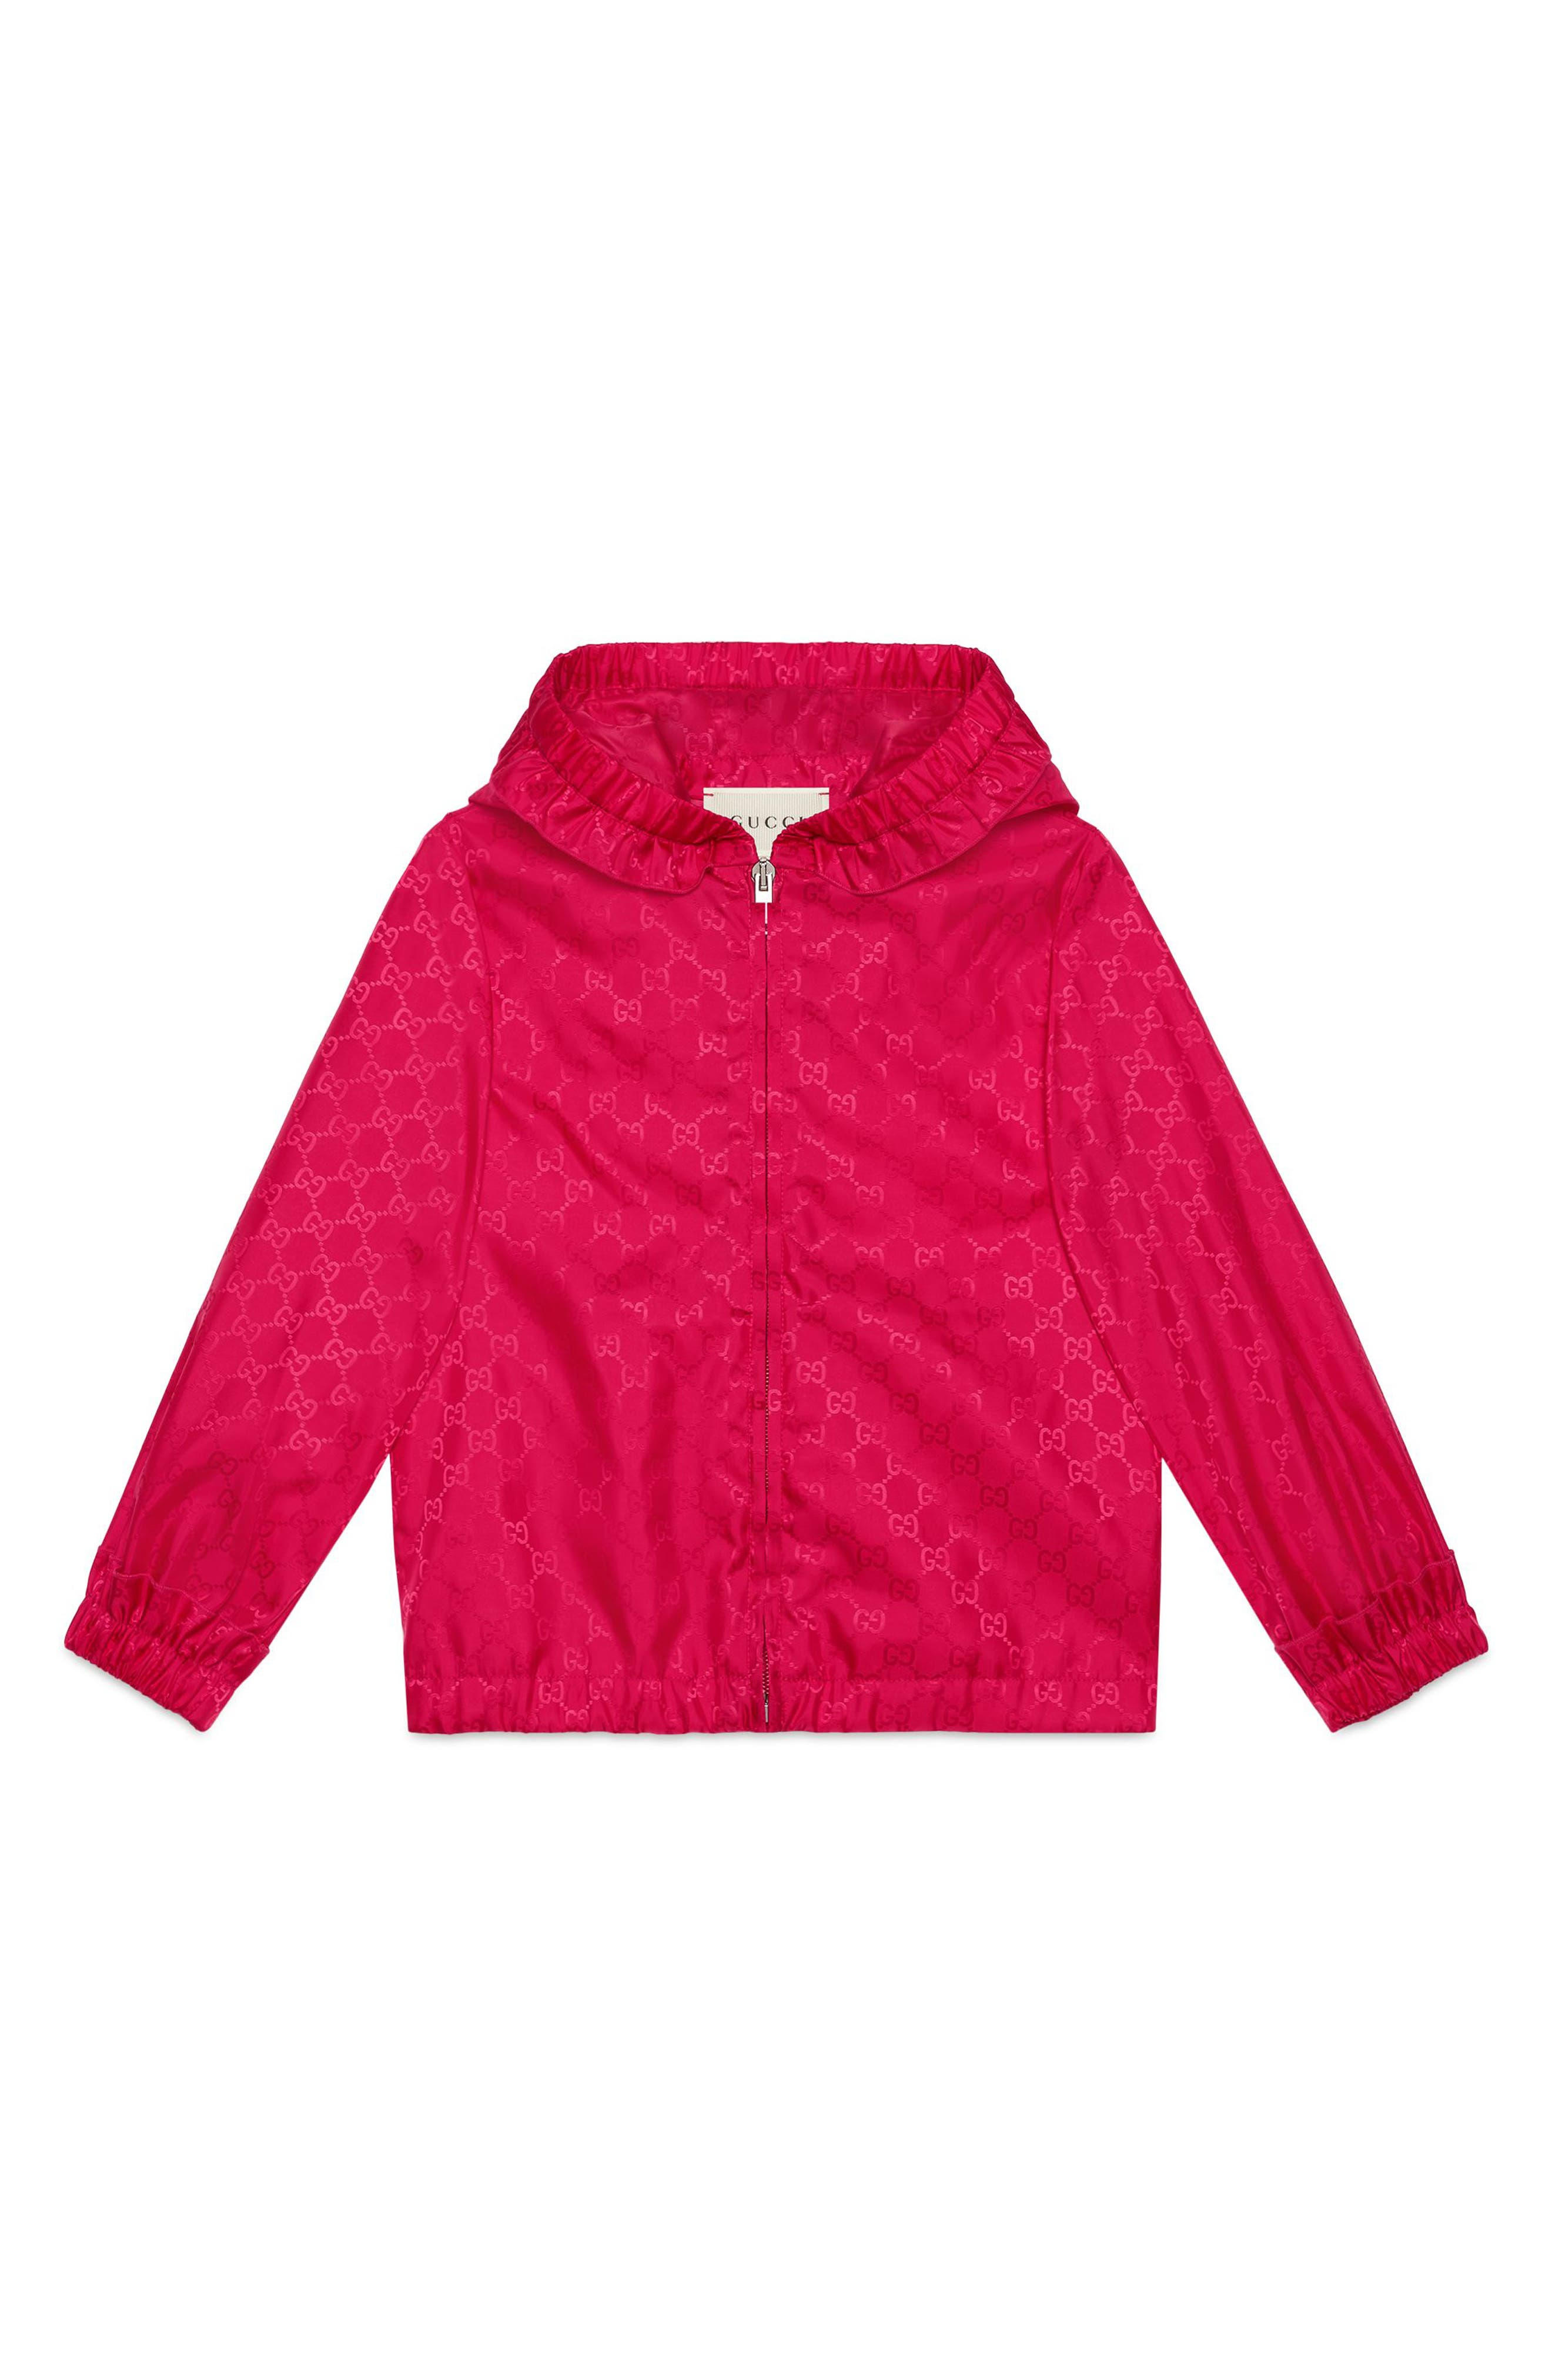 GUCCI, Water Resistant Hooded Windbreaker, Main thumbnail 1, color, FUXIA